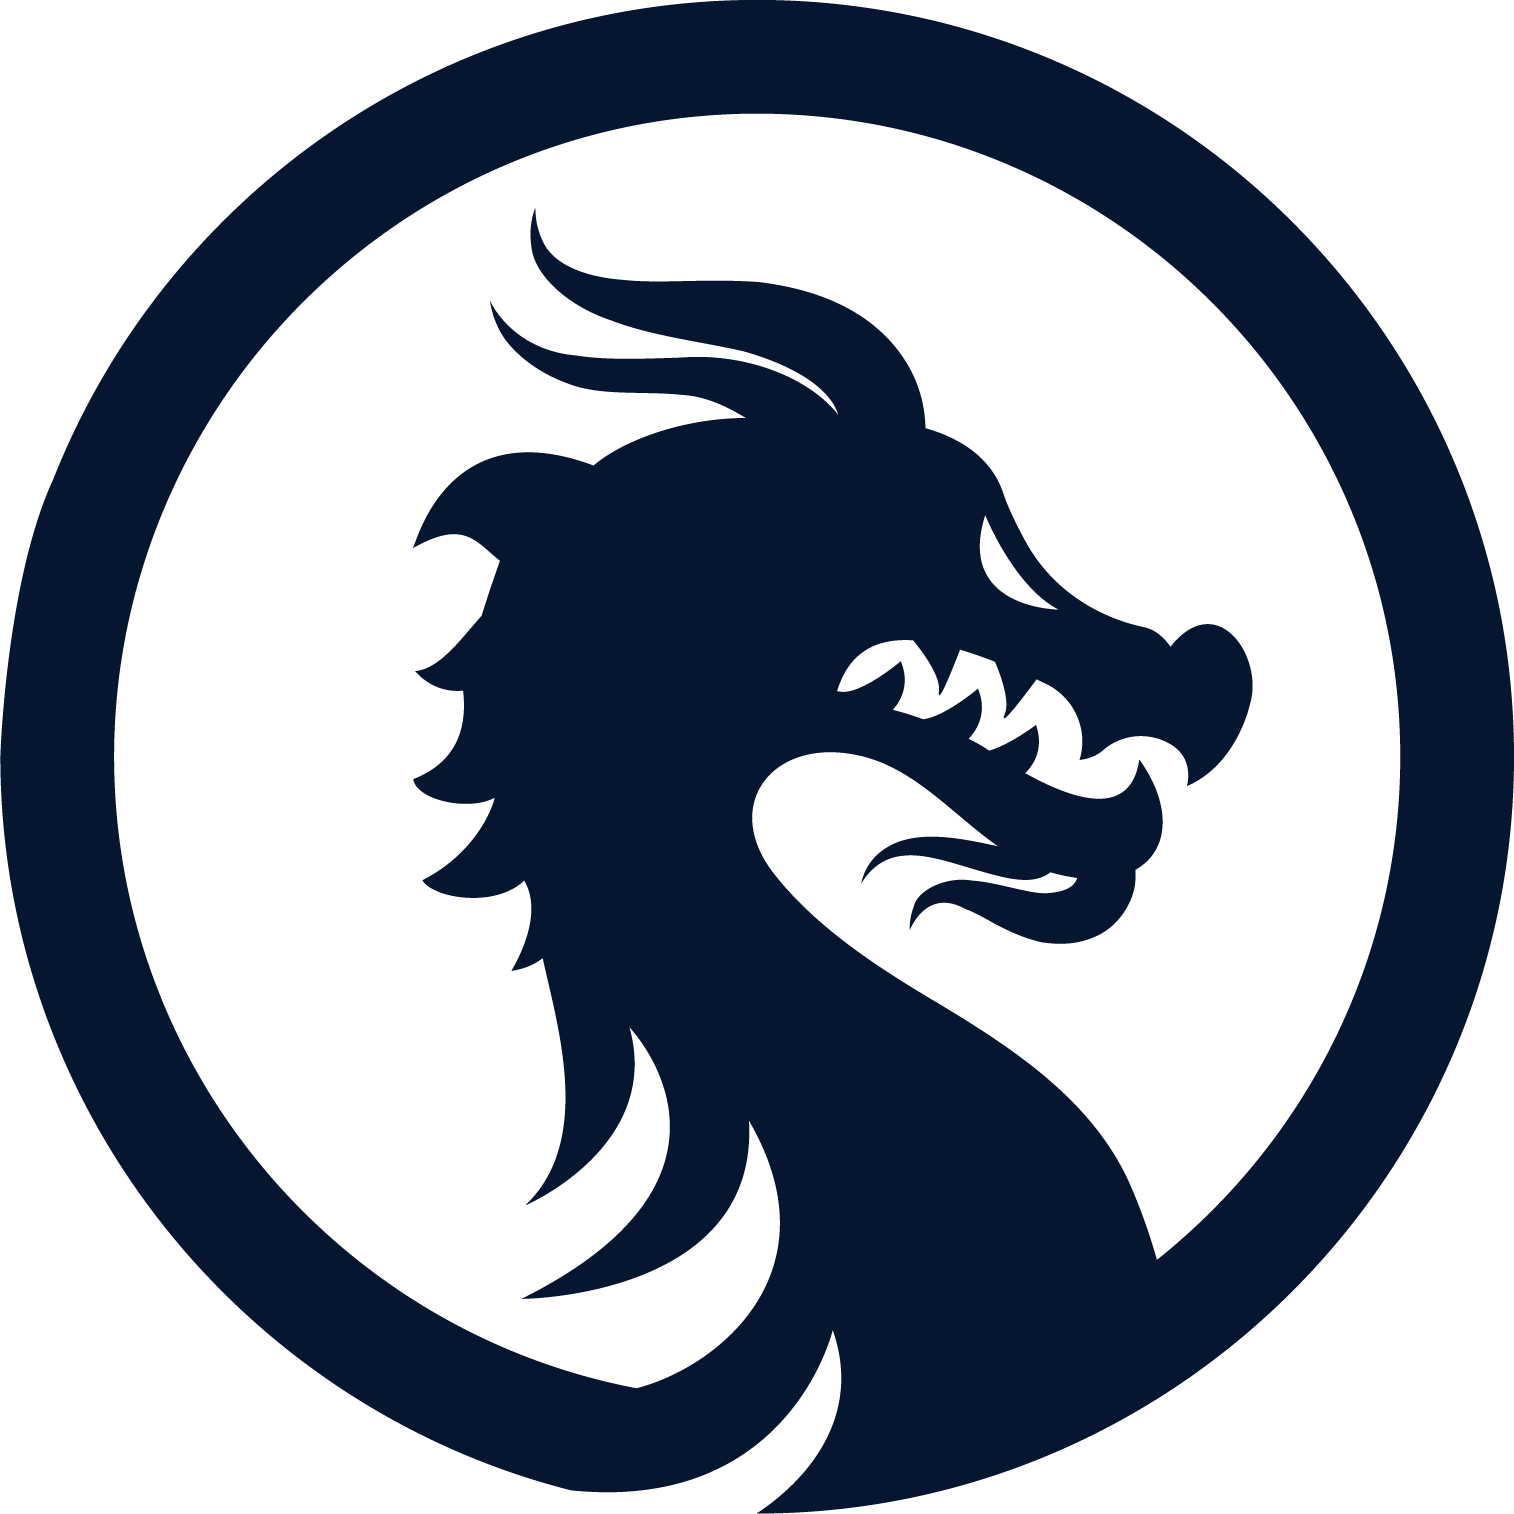 graphic download Dragon PNG Images